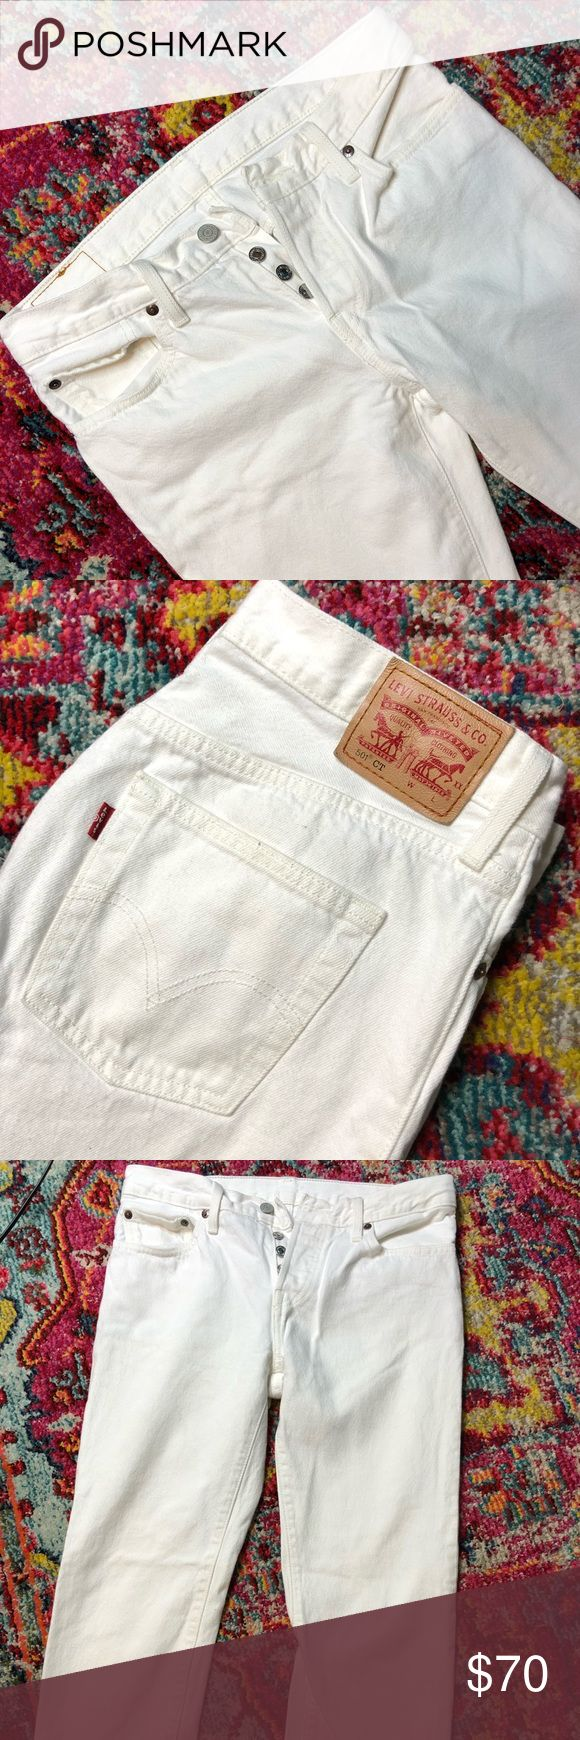 Levi's Jeans 501 CT ~ ViNtage Look Levis 501 CT - Vintage Look Levis Jeans   White Vintage Hipster Regular Denim Jeans  Button Fly Vintage Levis Denim Pants  Straight leg-Tapered  Size- W26 S40197 -Worn x2  -Like NEW!!!! Levi's Jeans Straight Leg